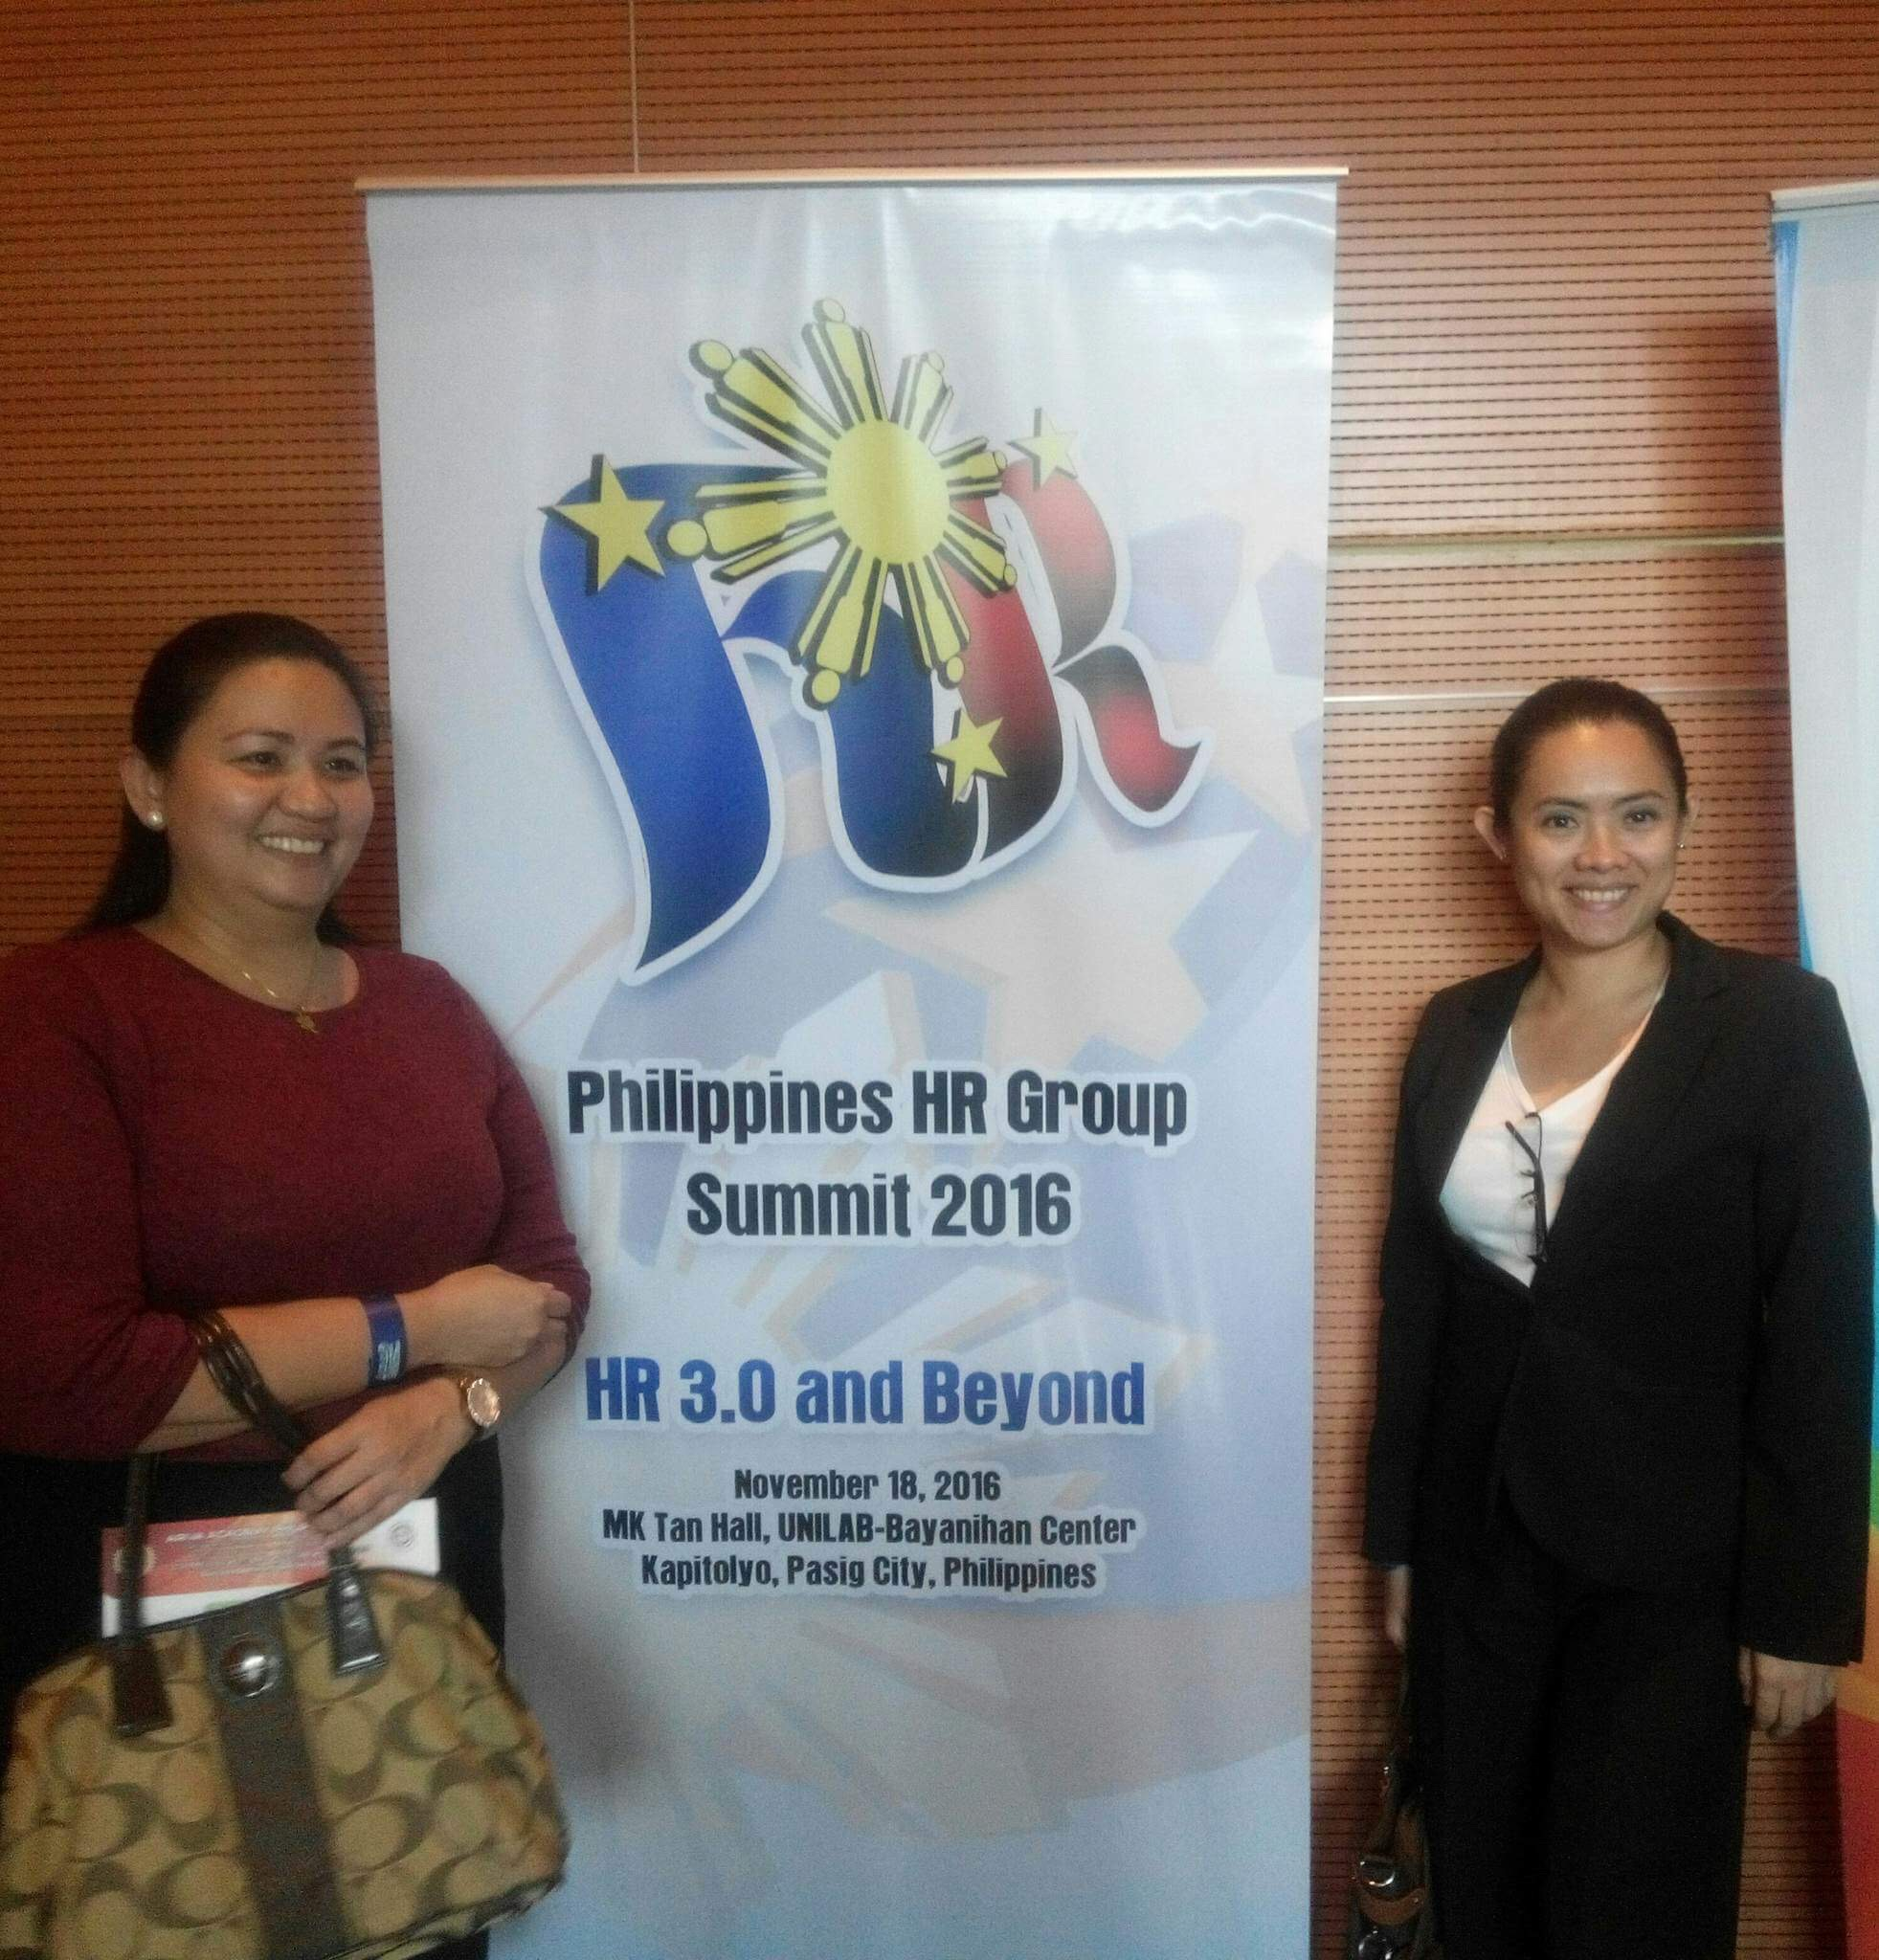 Attending Philippine HR Summit